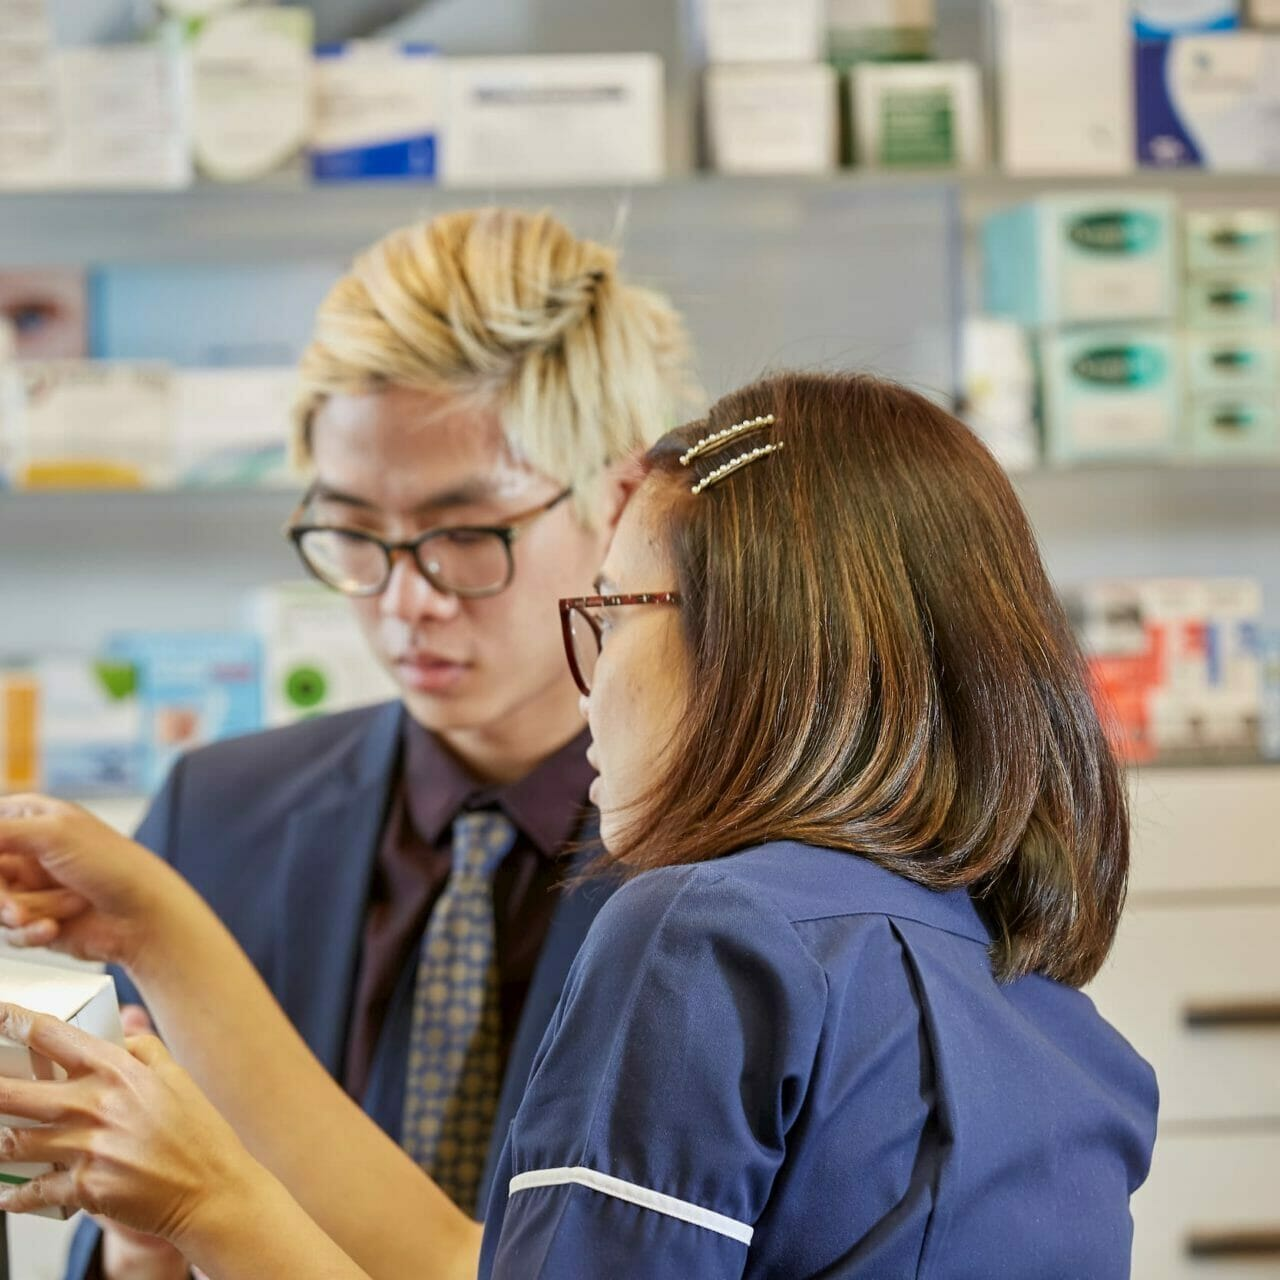 Two pharmacists in a pharmacy